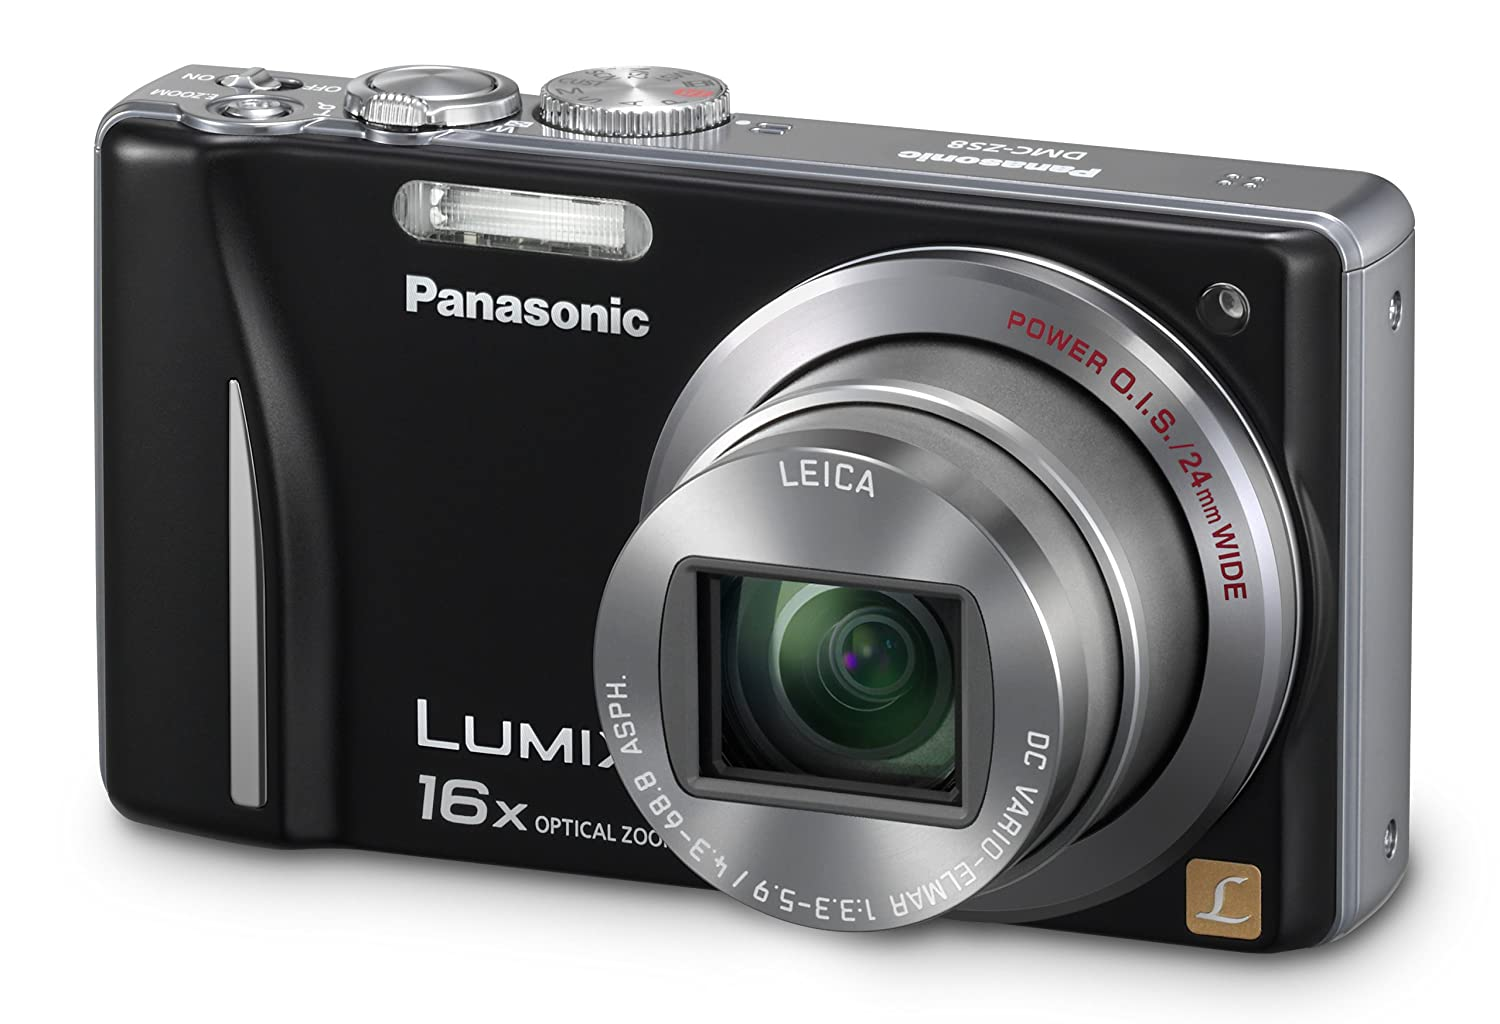 amazon com panasonic lumix dmc zs8 14 1 mp digital camera with 16x rh amazon com panasonic lumix dmc-zs20 user guide Panasonic Lumix DMC ZS20 Coppying Pictures to Card